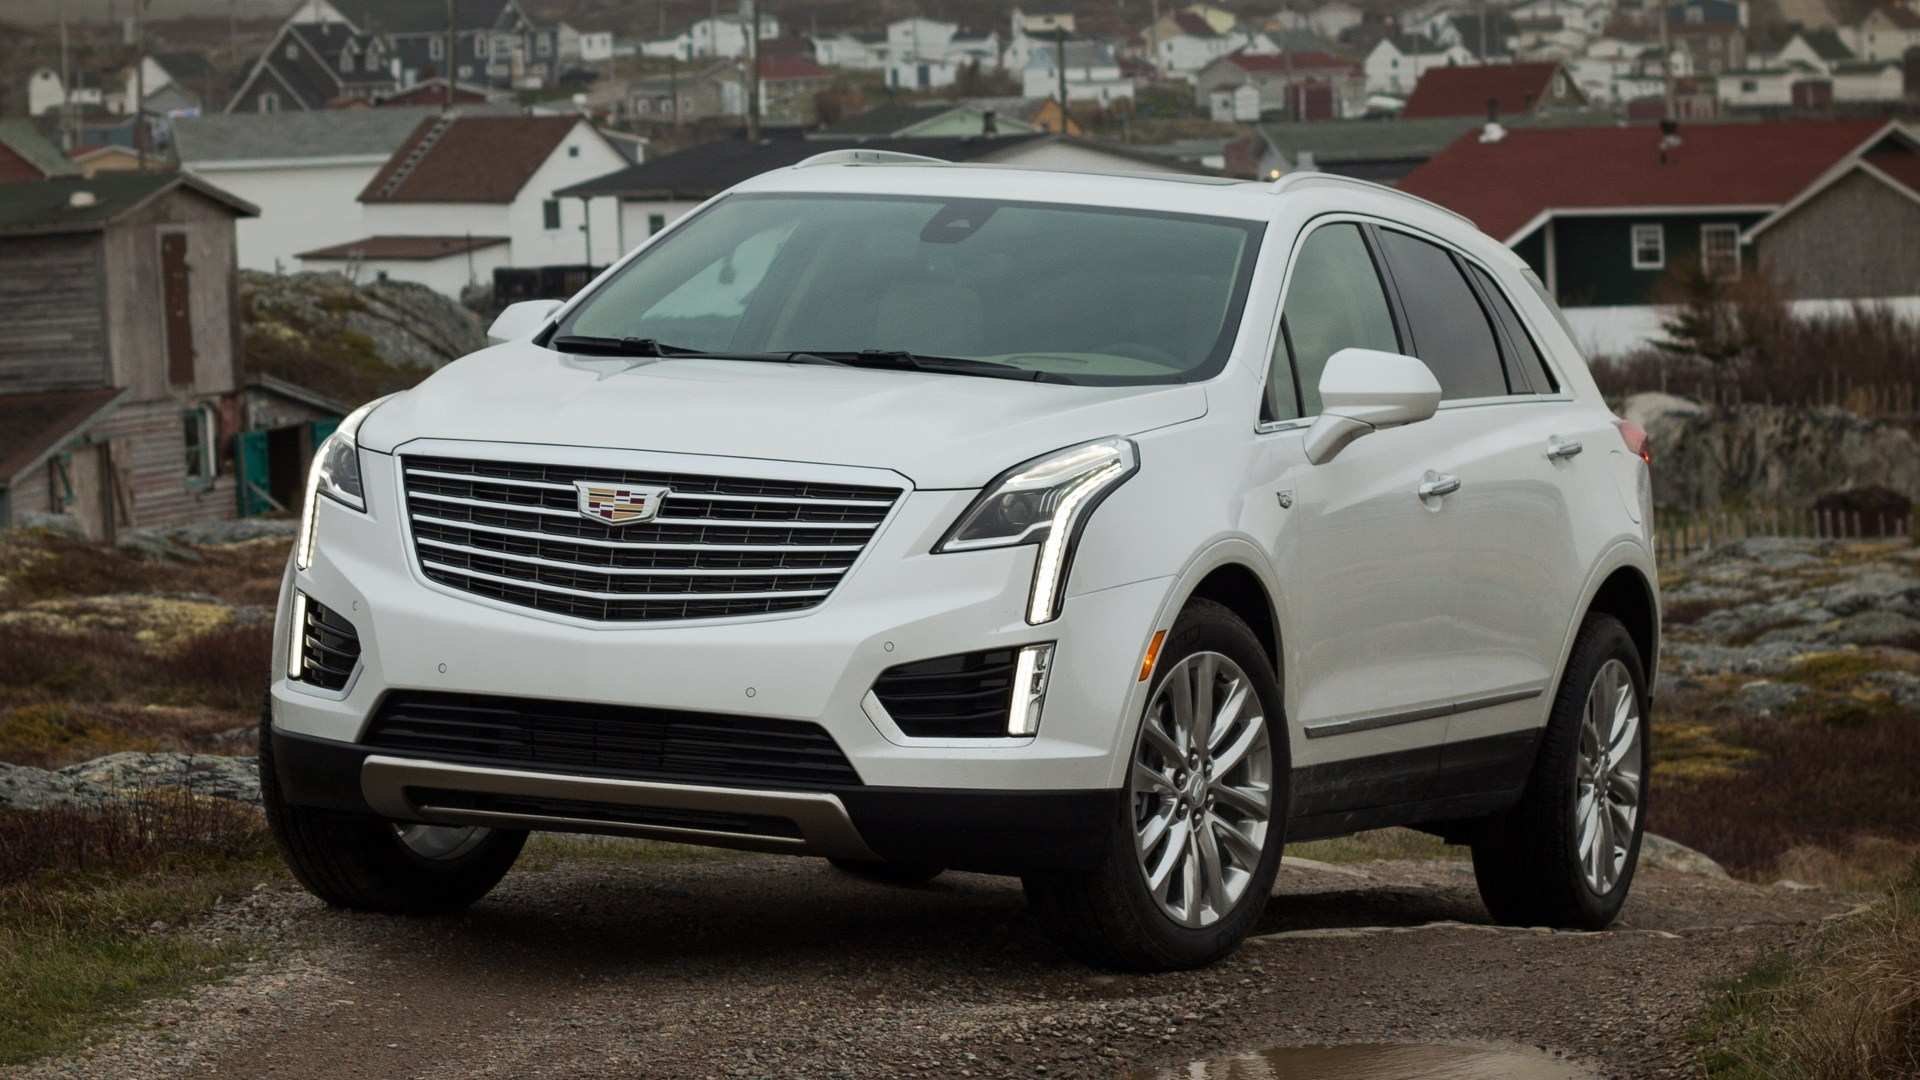 74 All New Cadillac Xt3 2020 Exterior And Interior